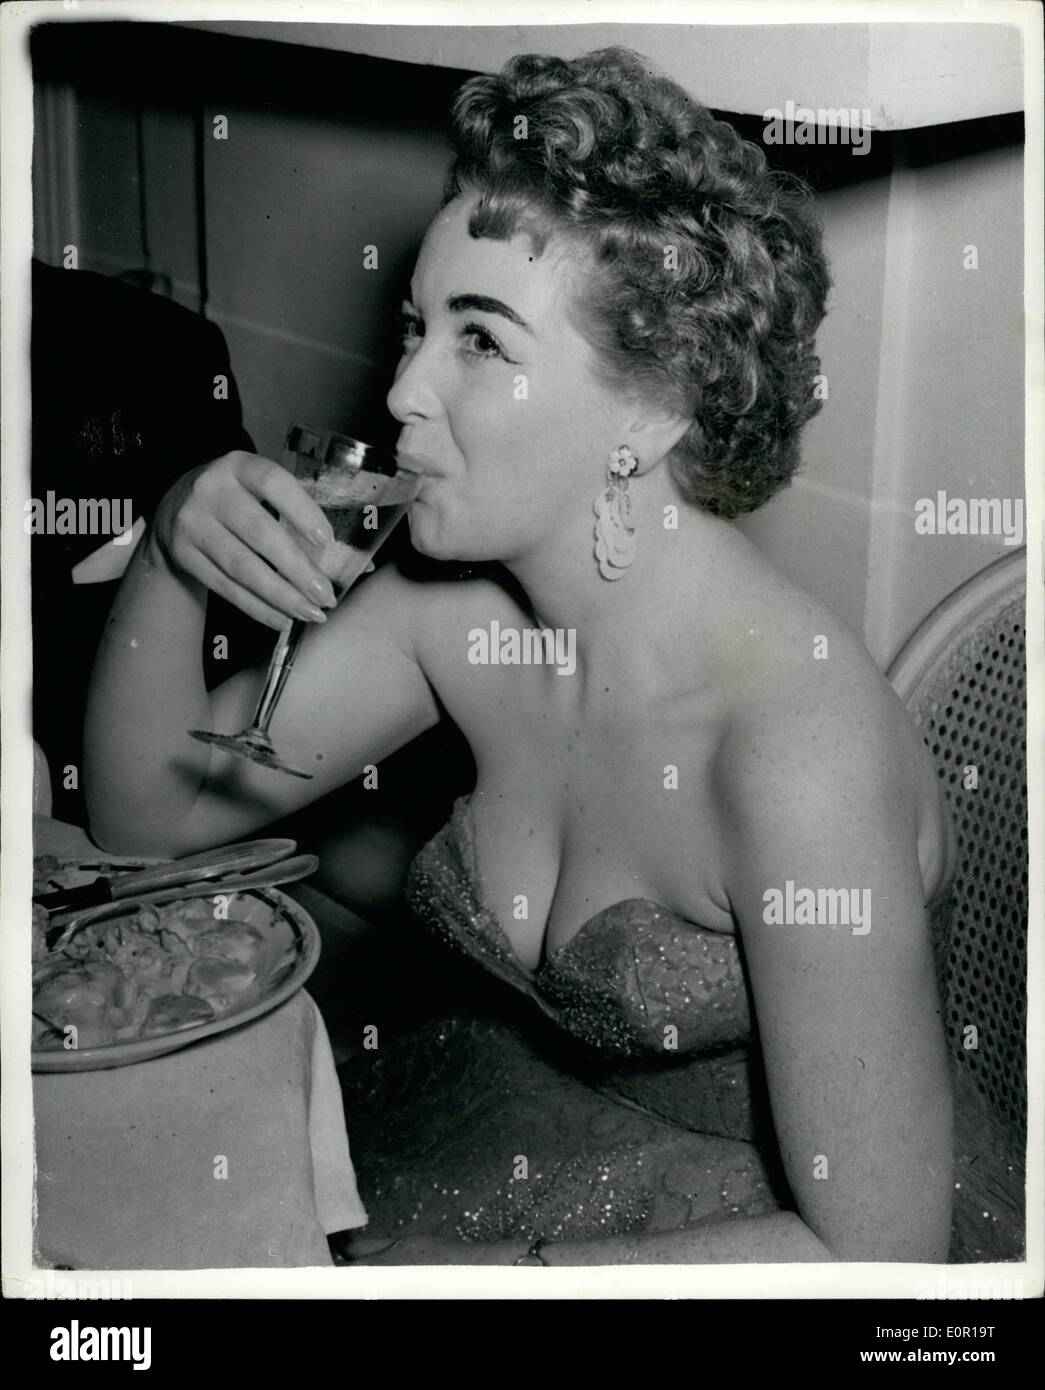 Aug. 08, 1957 - Socialites attend £20,000 Charity Party at Deauville. Singer takes a drink. More the 900 guests attended the Ball of the Little White Beds at £15, a time held on Saturday at the Deauville Casino. The wealthy guests struggled to eat their 9 course dinner in the overcrowded dining room usually accommodating 350. Gowns were torn but £20,000 was raised for charity. Keystone Photo Shows: Marion Ryan from Leeds, a singer in Ray Ellington's band, takes a drink when she attended the Charity ball. JSS/Keystone - Stock Image